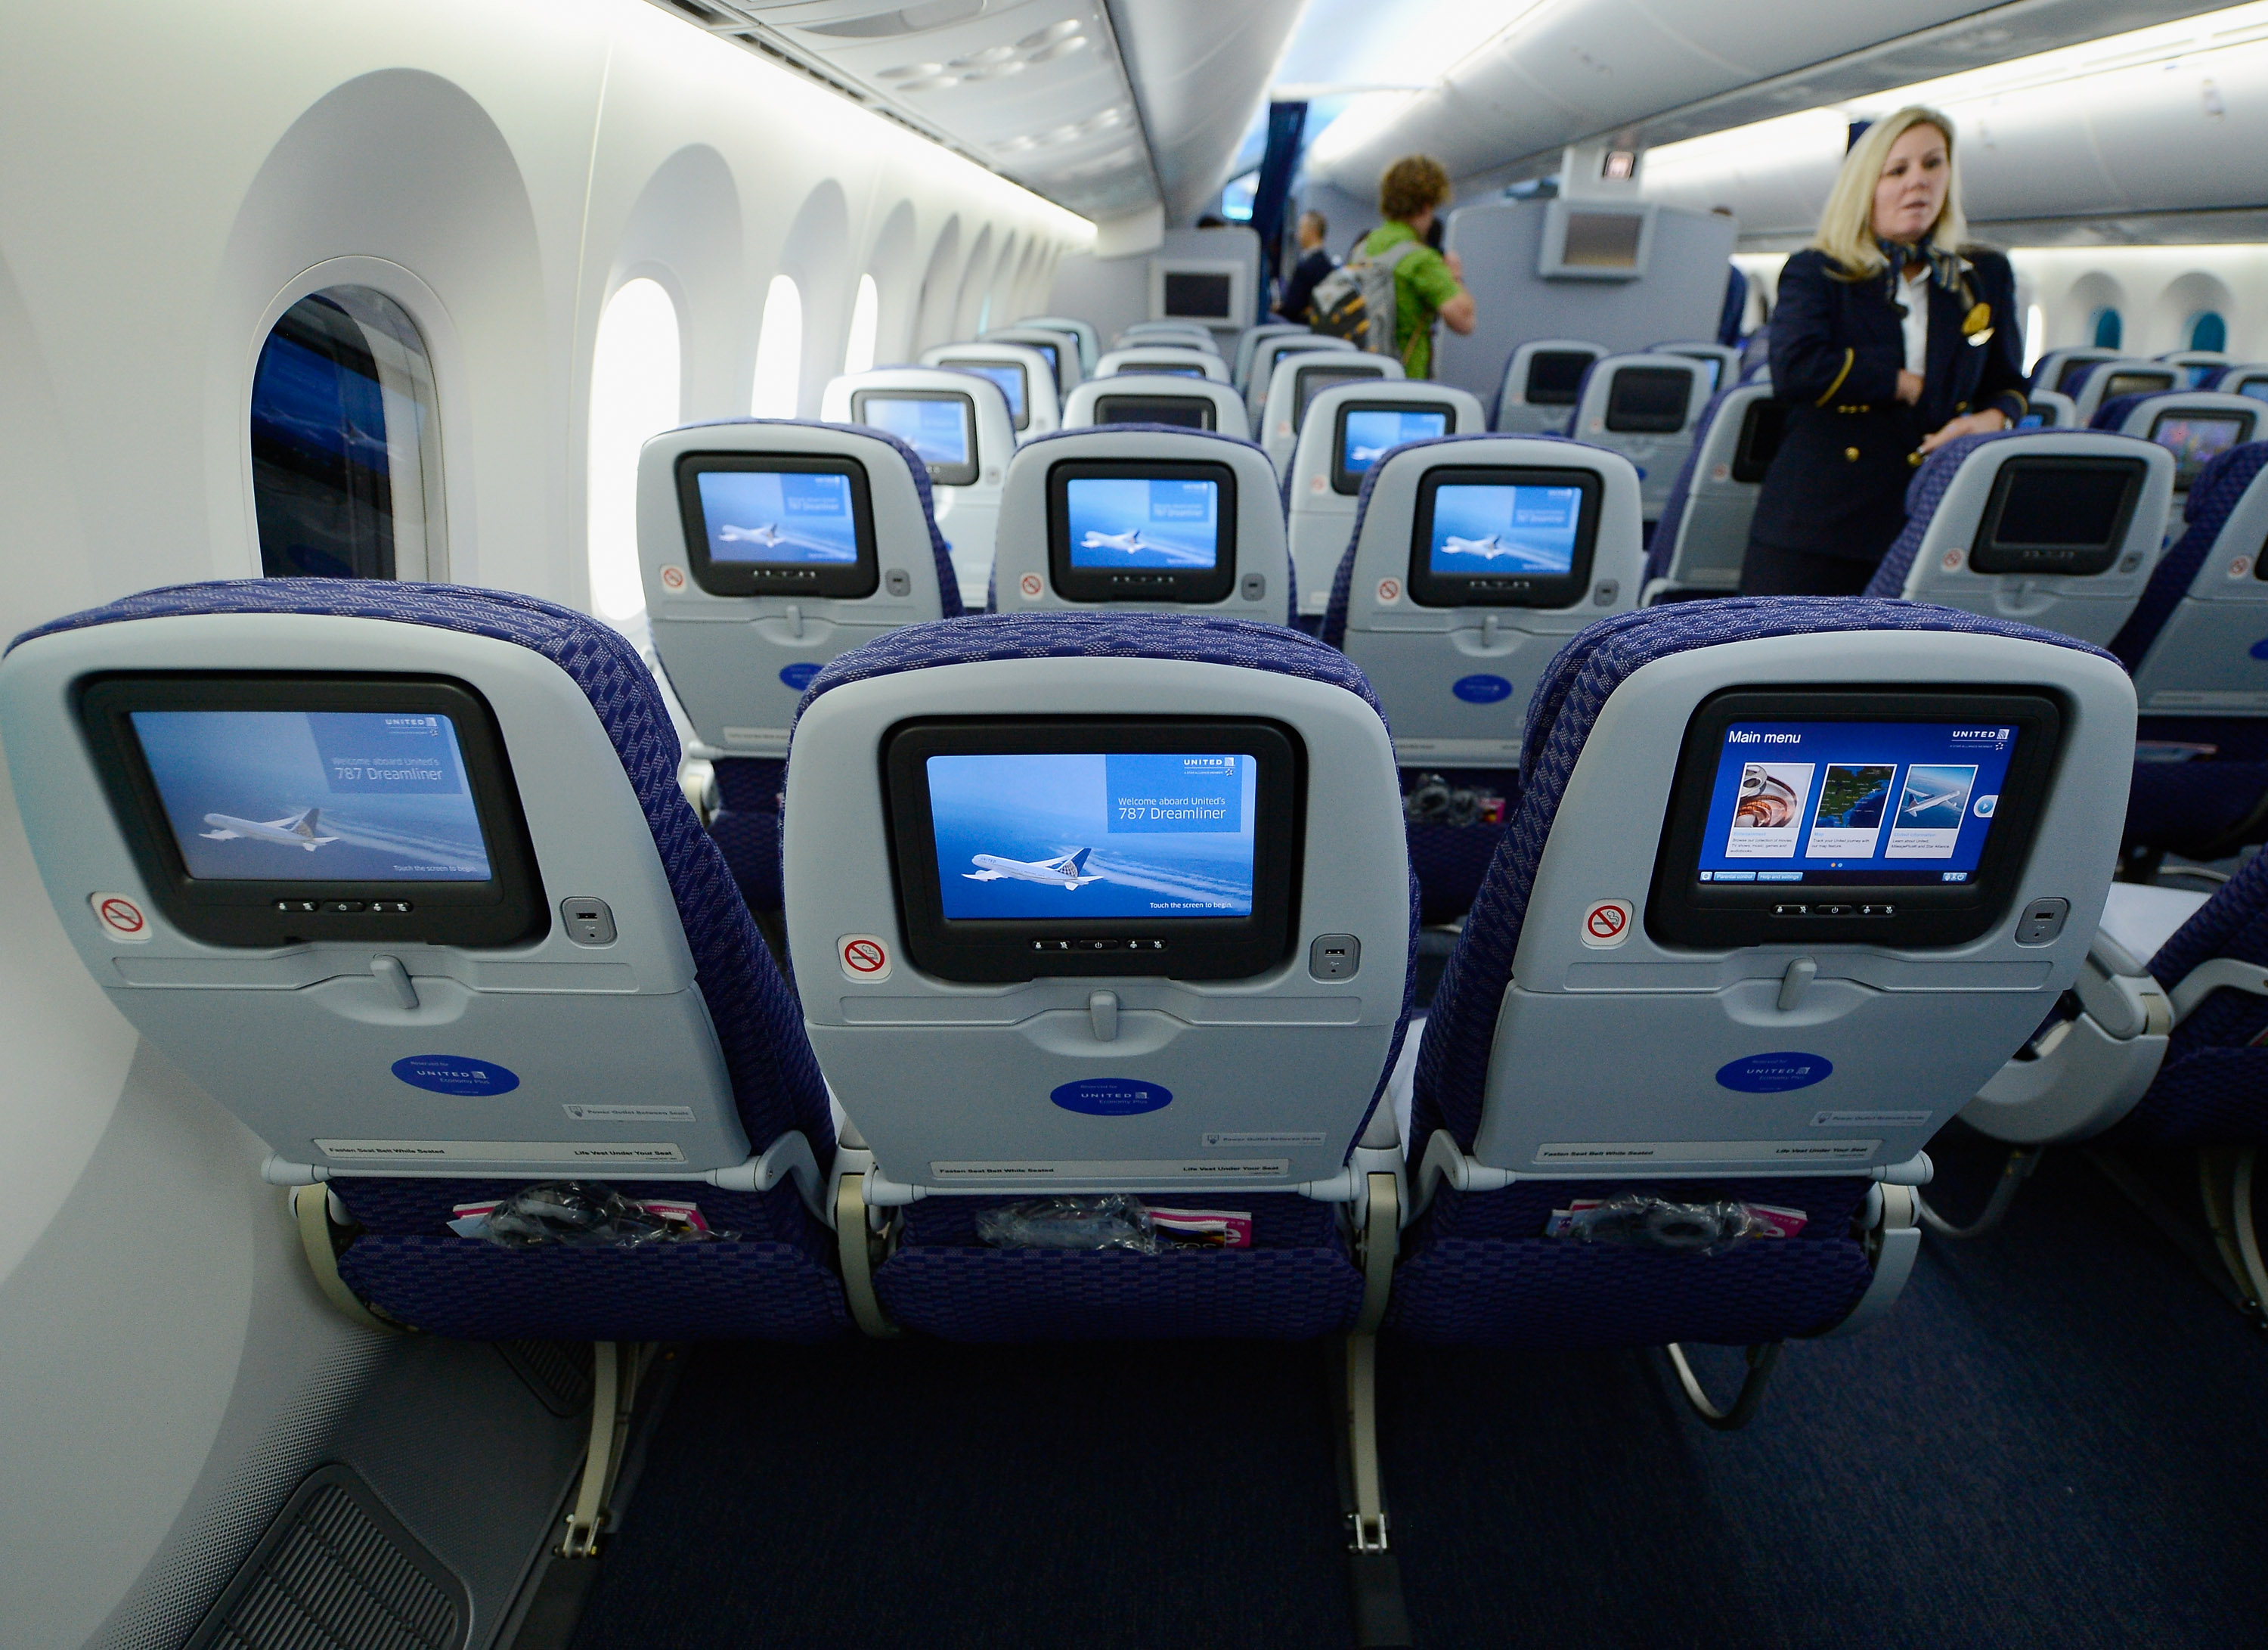 United Airlines flight attendant Tina looks at personal entertainment systems on the new Boeing 787 Dreamliner during a tour of the jet at Los Angeles International Airport on Nov. 30, 2012.